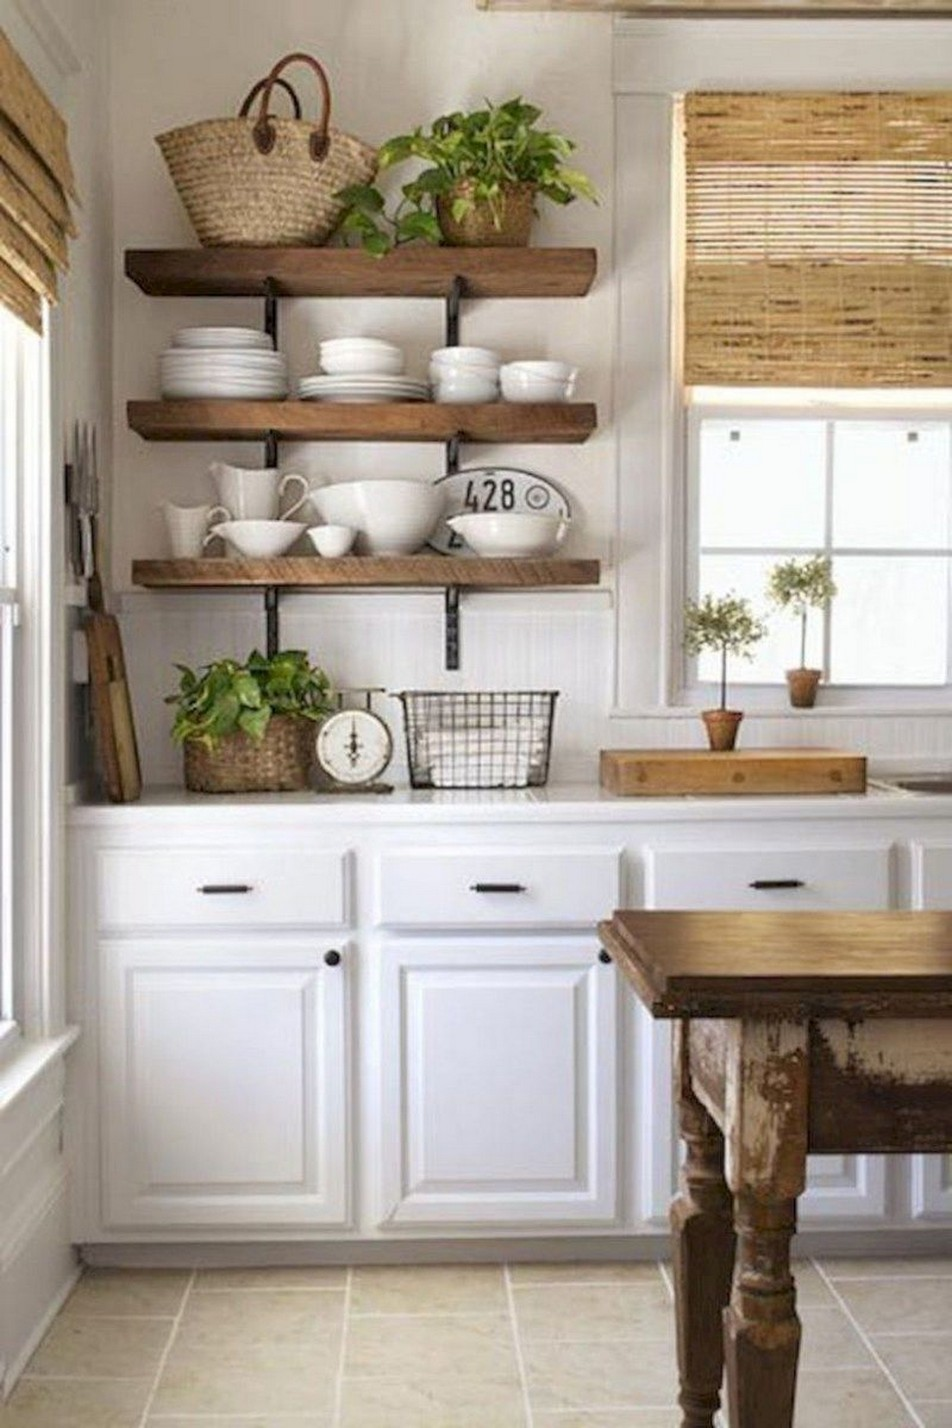 86 Some Small Kitchen Ideas To Help You Do Up Your Kitchen 63